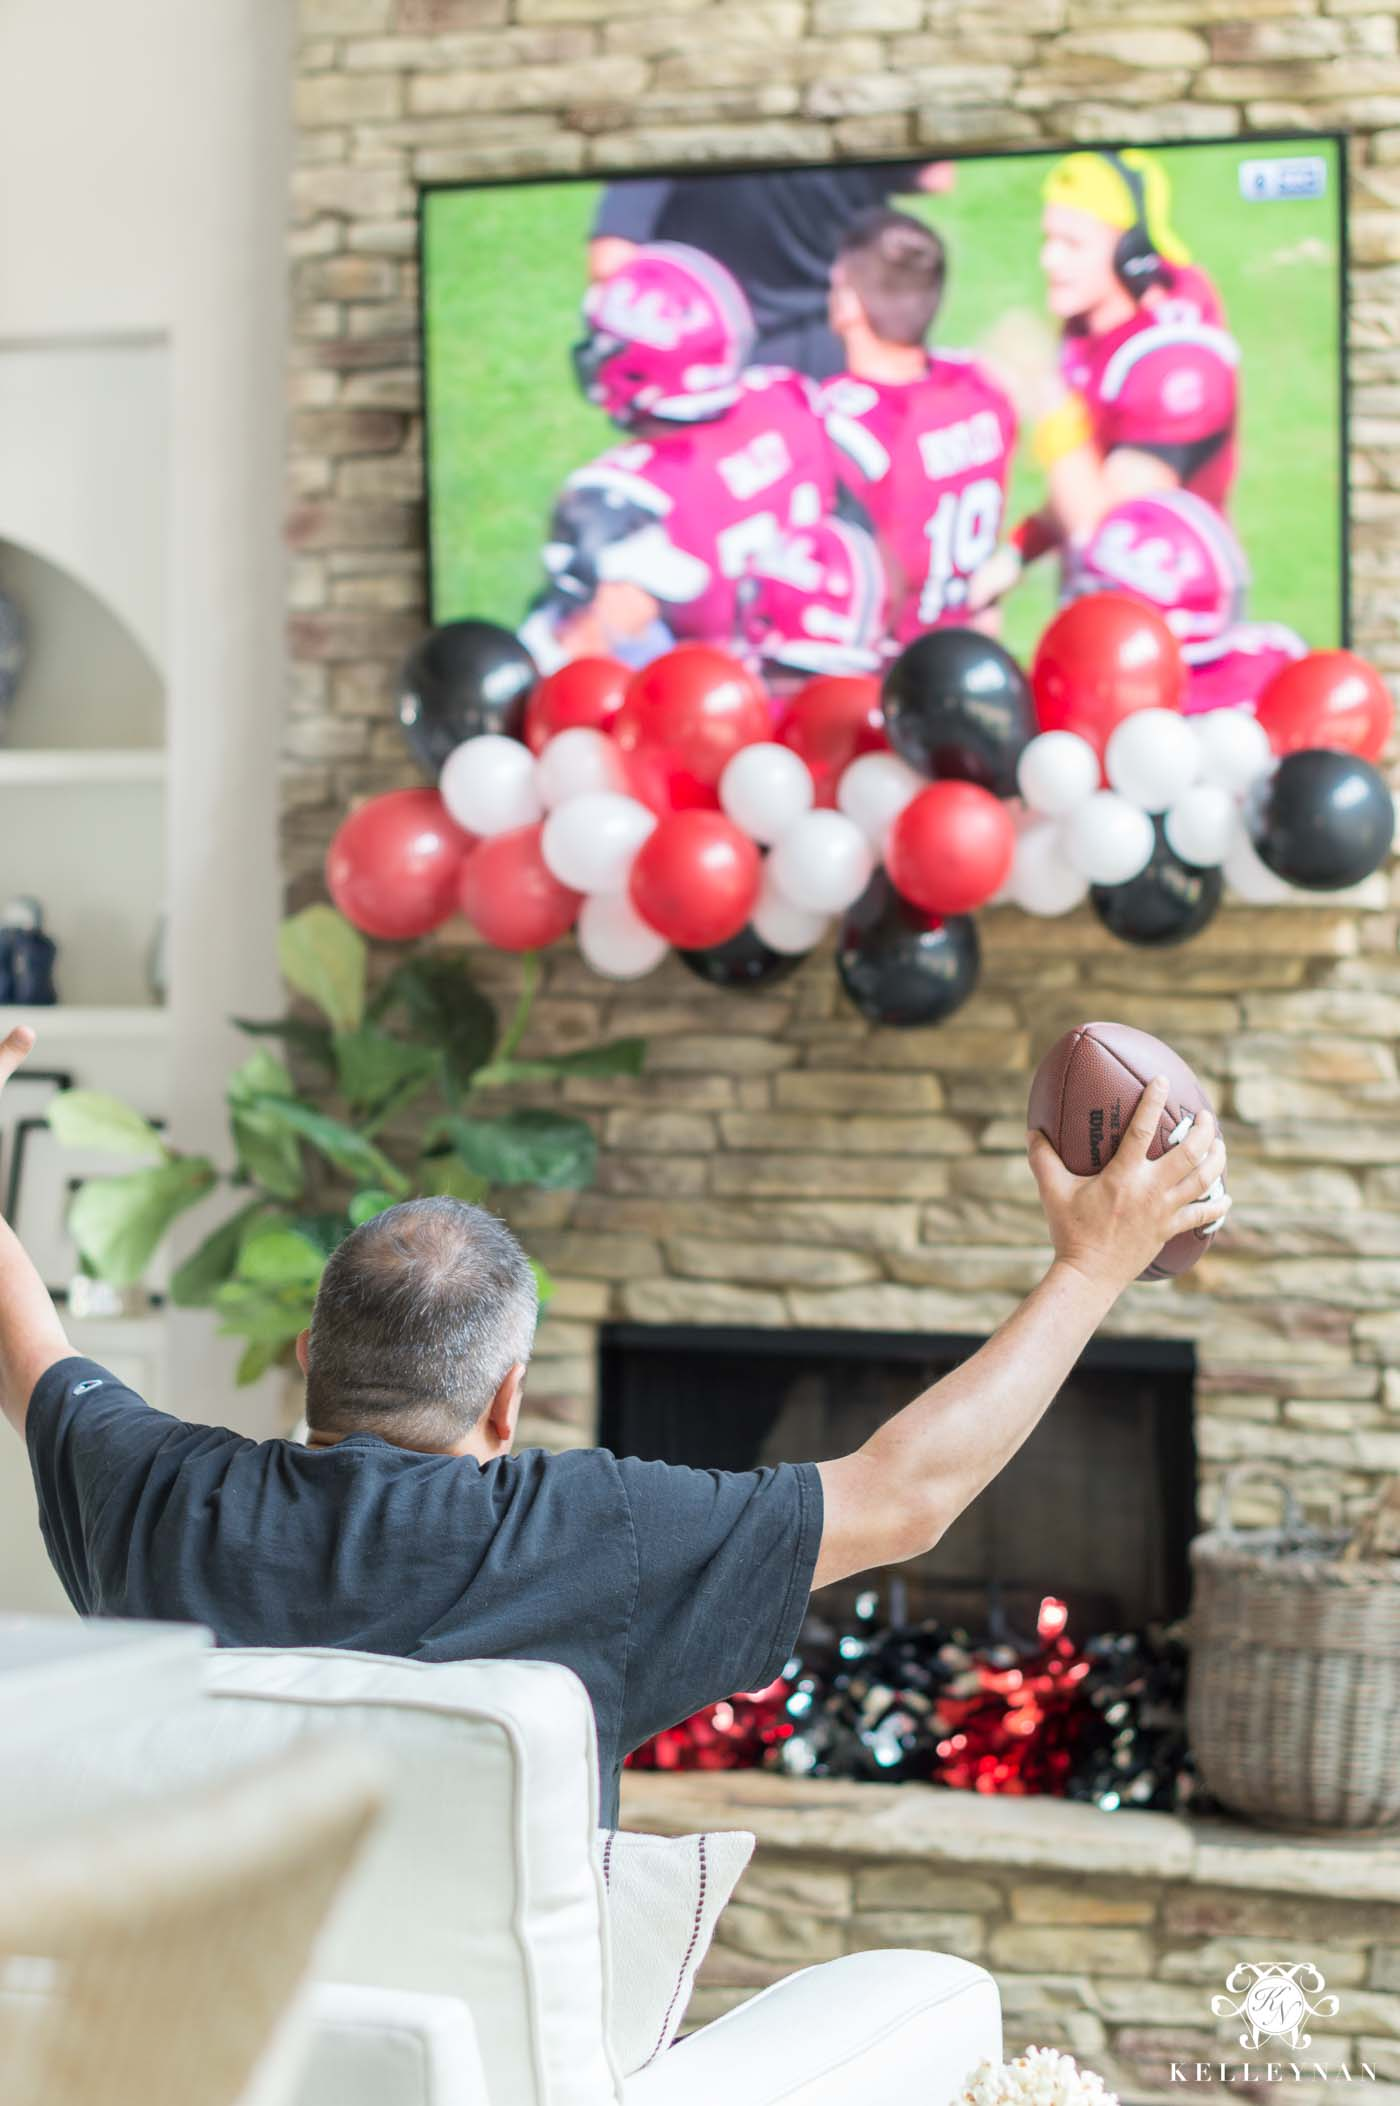 Home tailgating and game time ideas